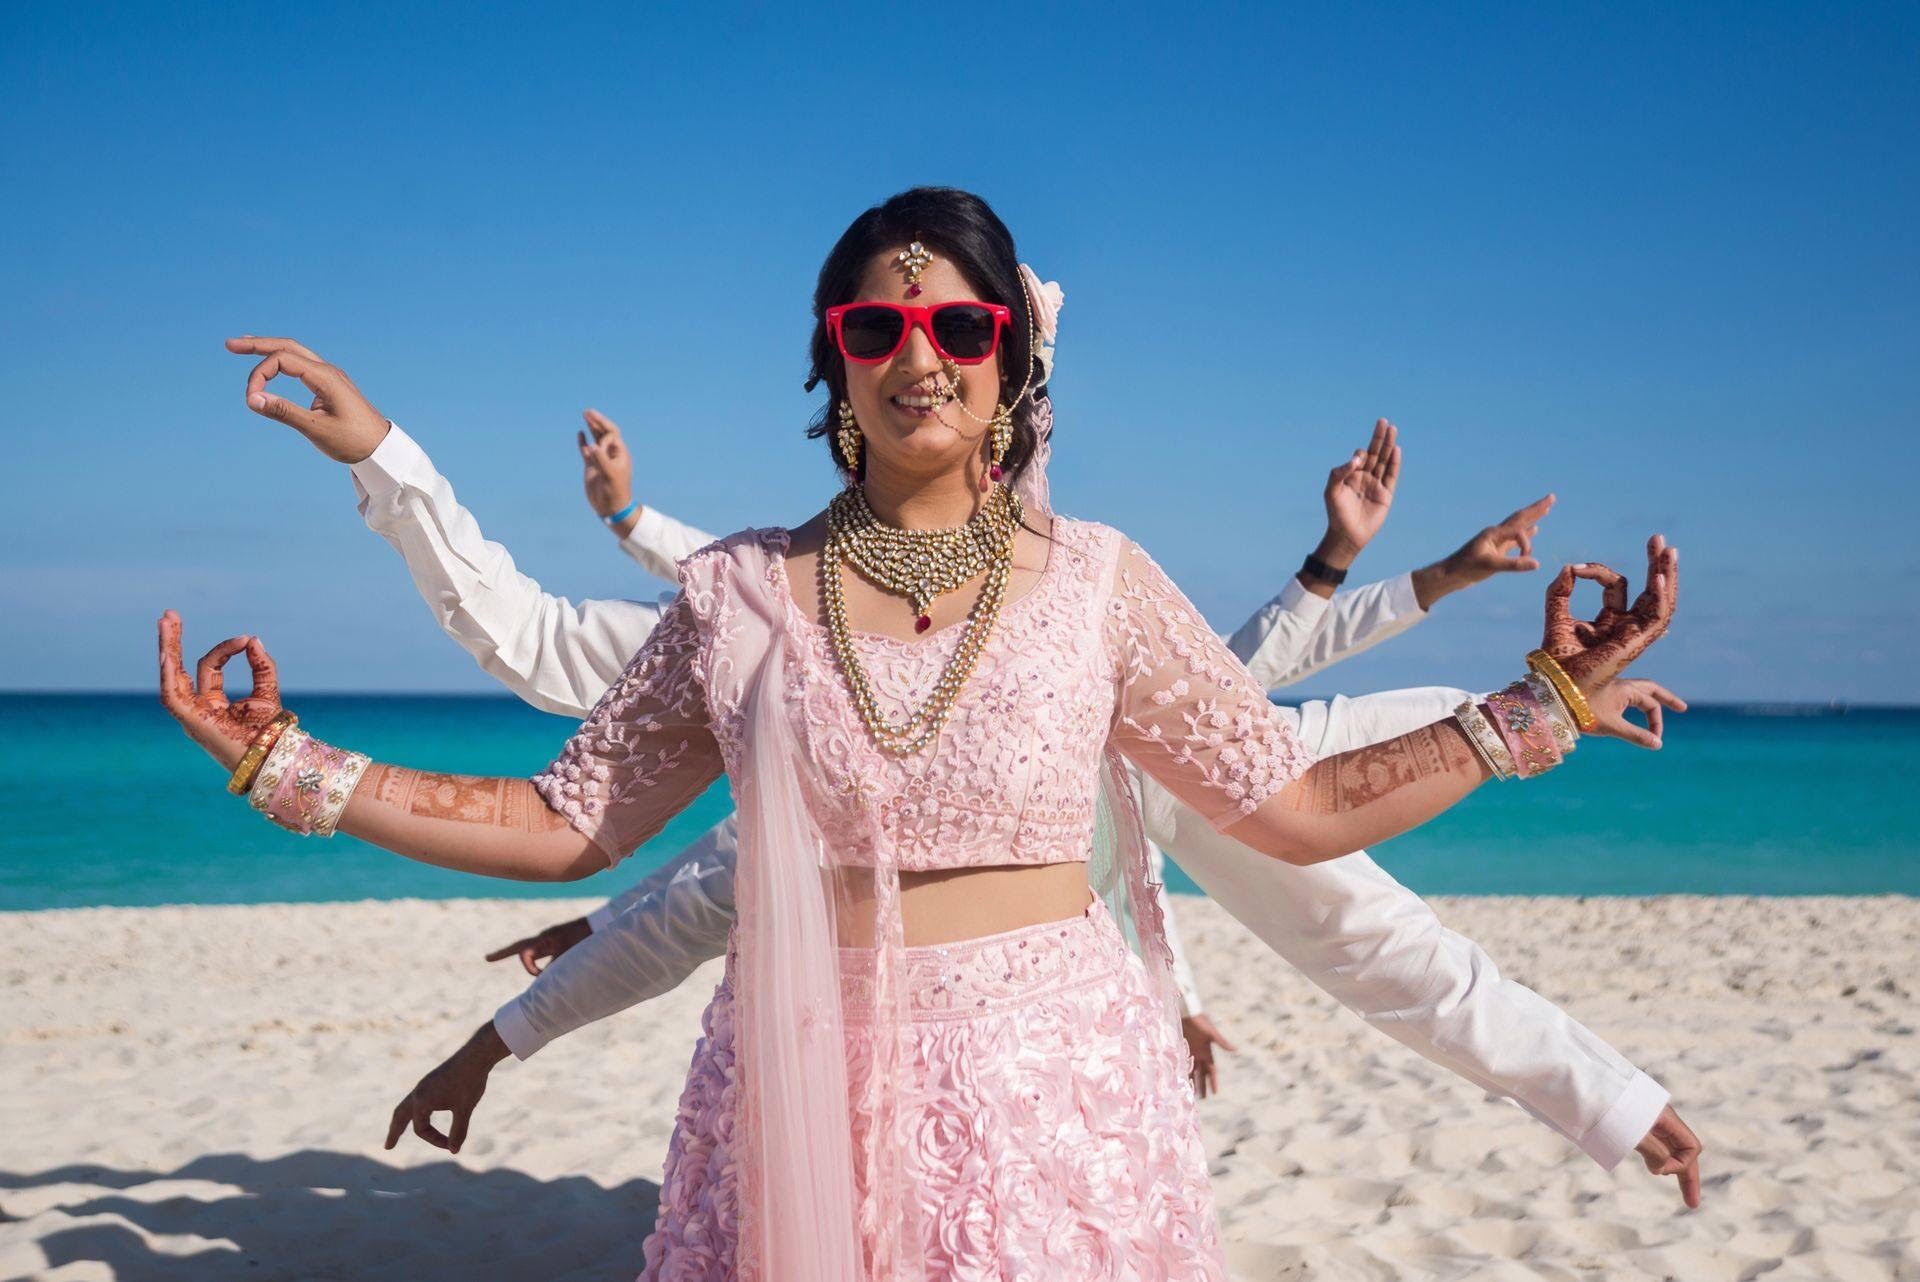 indian beach wedding photography and videography packages in cancun mexico by Latin Asia